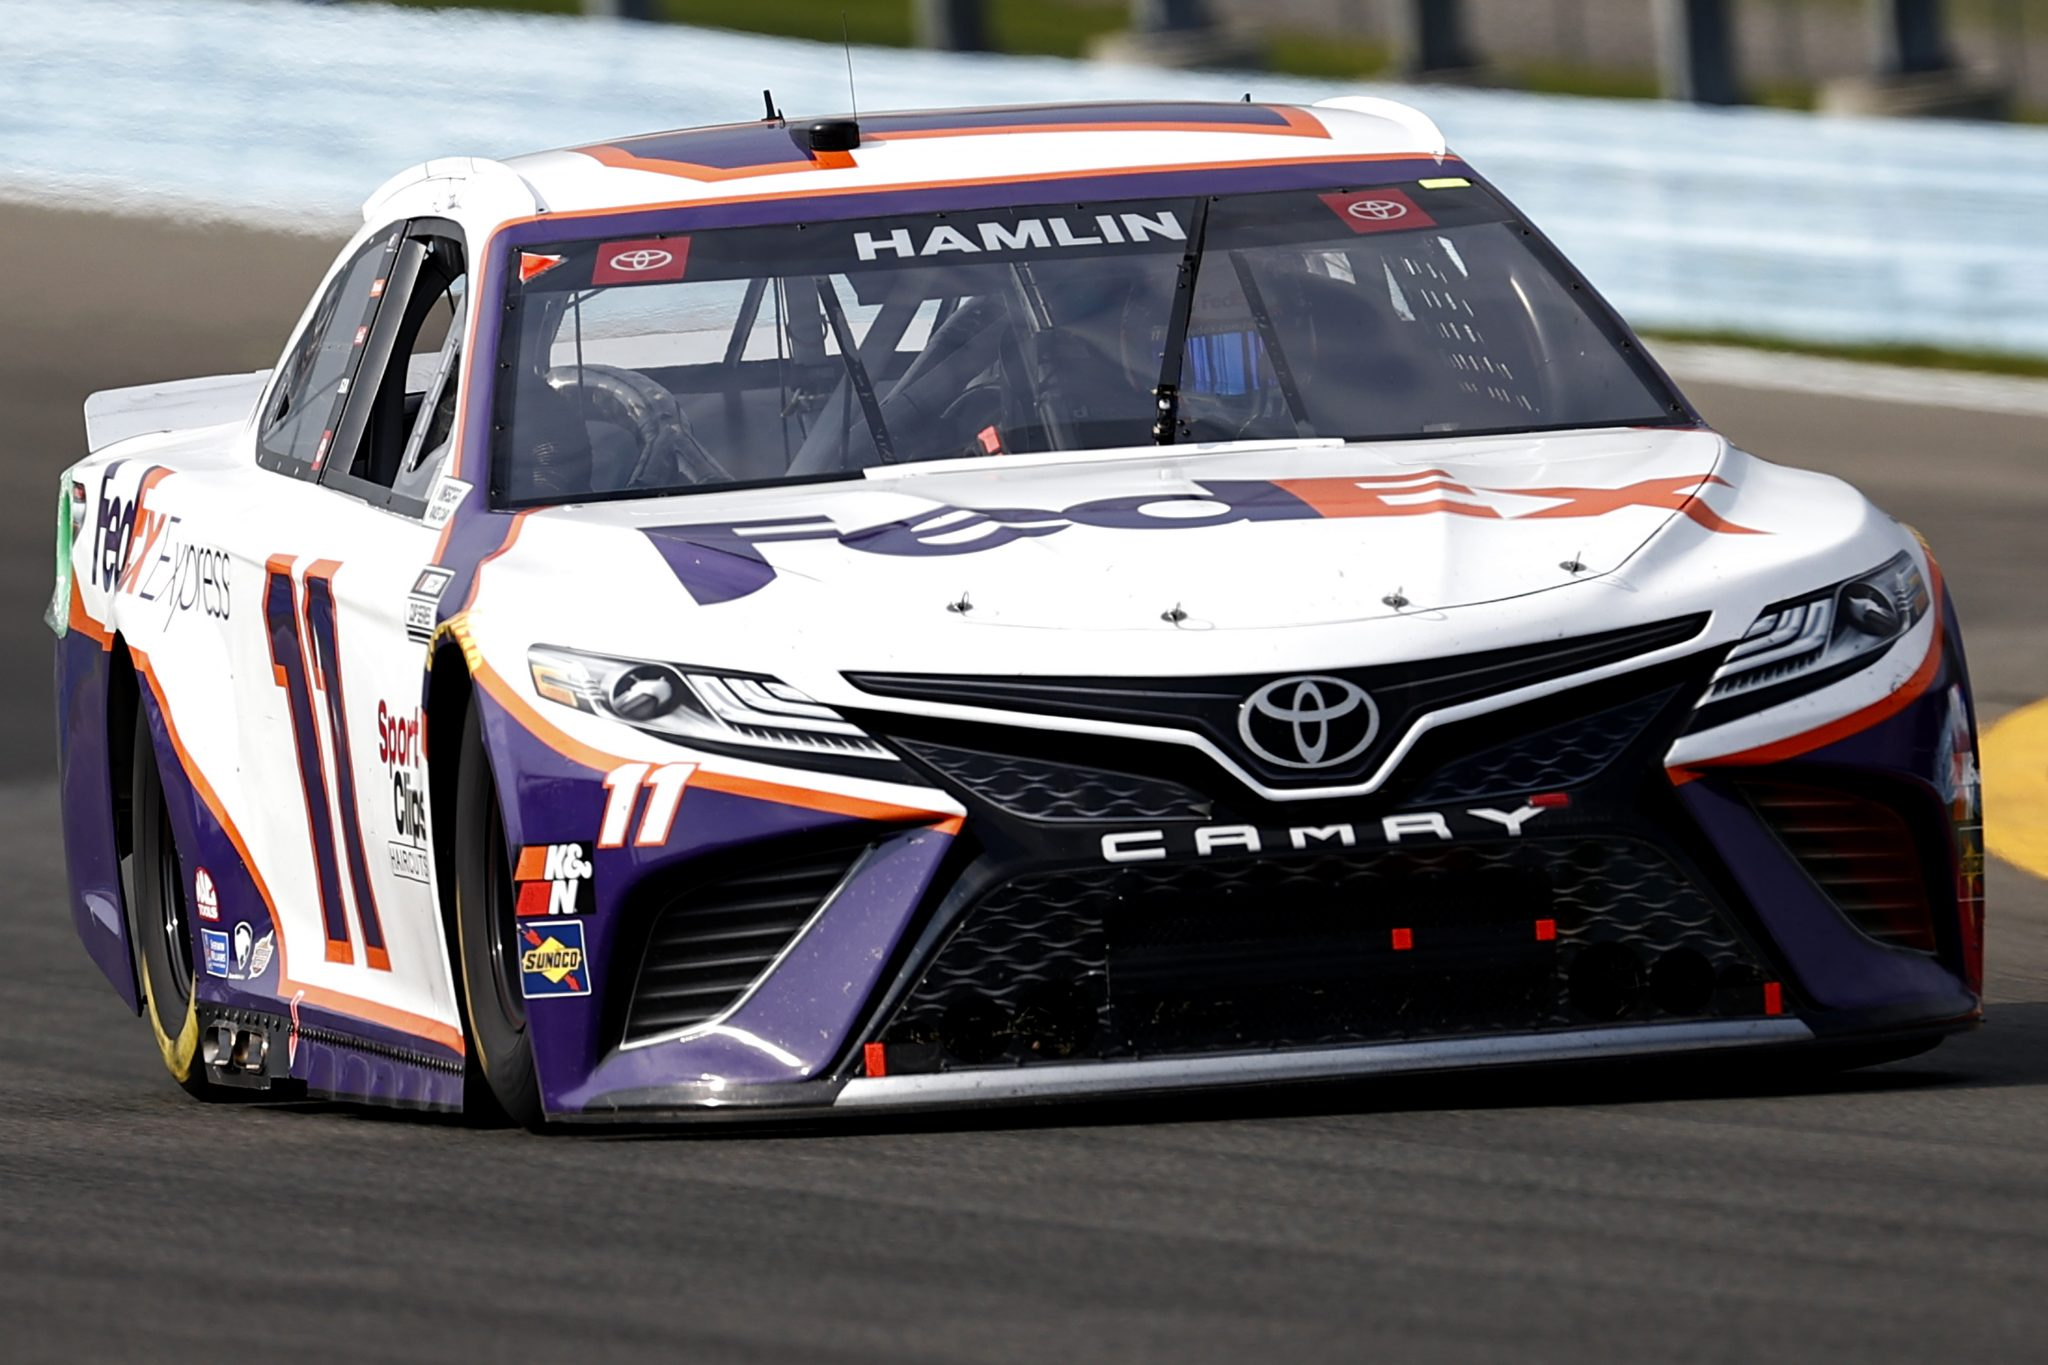 WATKINS GLEN, NEW YORK - AUGUST 08: Denny Hamlin, driver of the #11 FedEx Express Toyota, drives during the NASCAR Cup Series Go Bowling at The Glen at Watkins Glen International on August 08, 2021 in Watkins Glen, New York. (Photo by Jared C. Tilton/Getty Images)   Getty Images